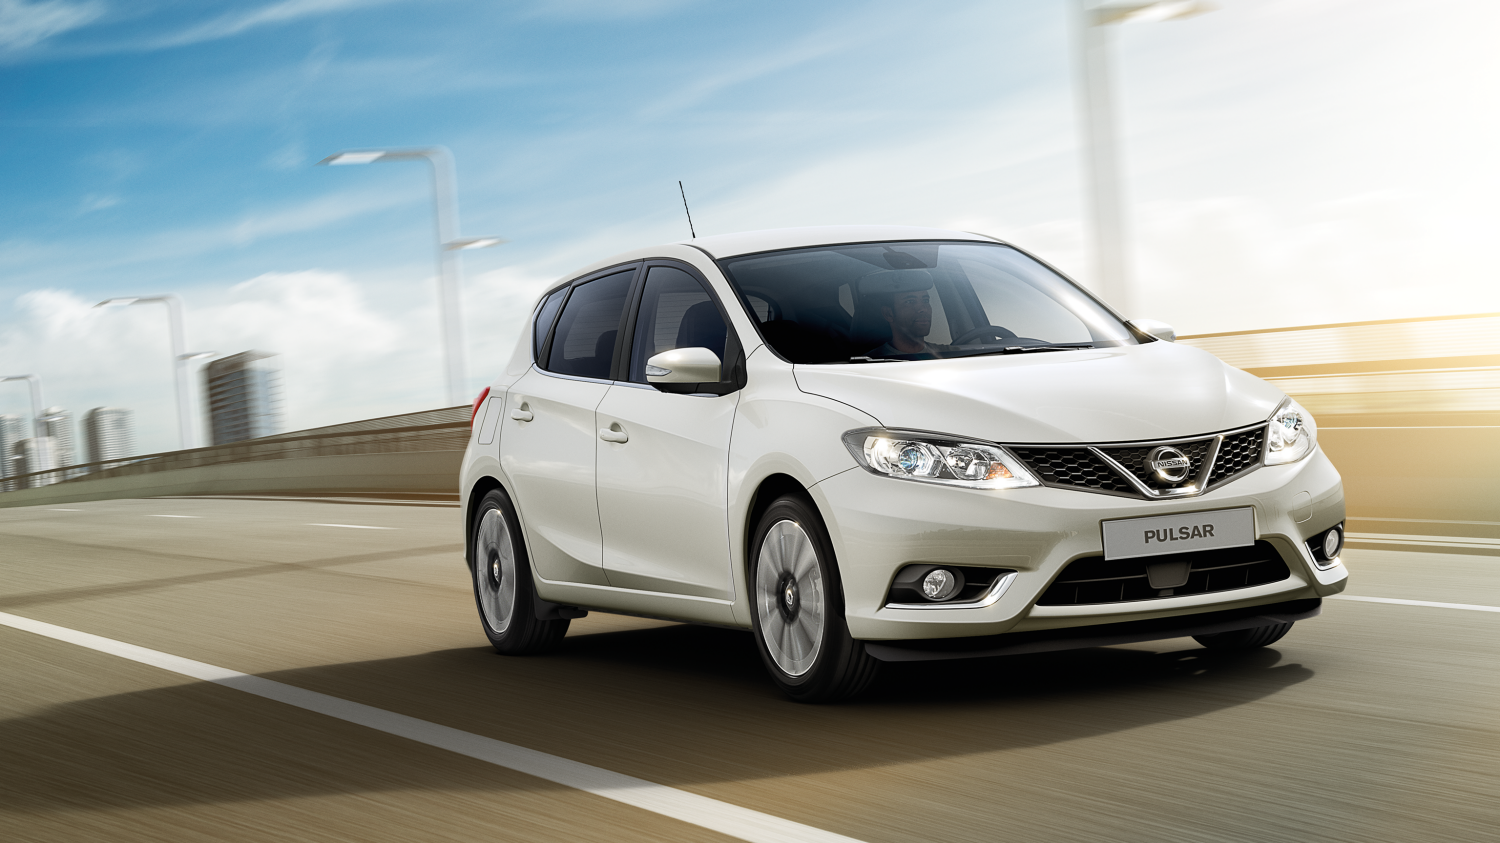 Berline Nissan PULSAR - Photo en action sur route 7/8 avant